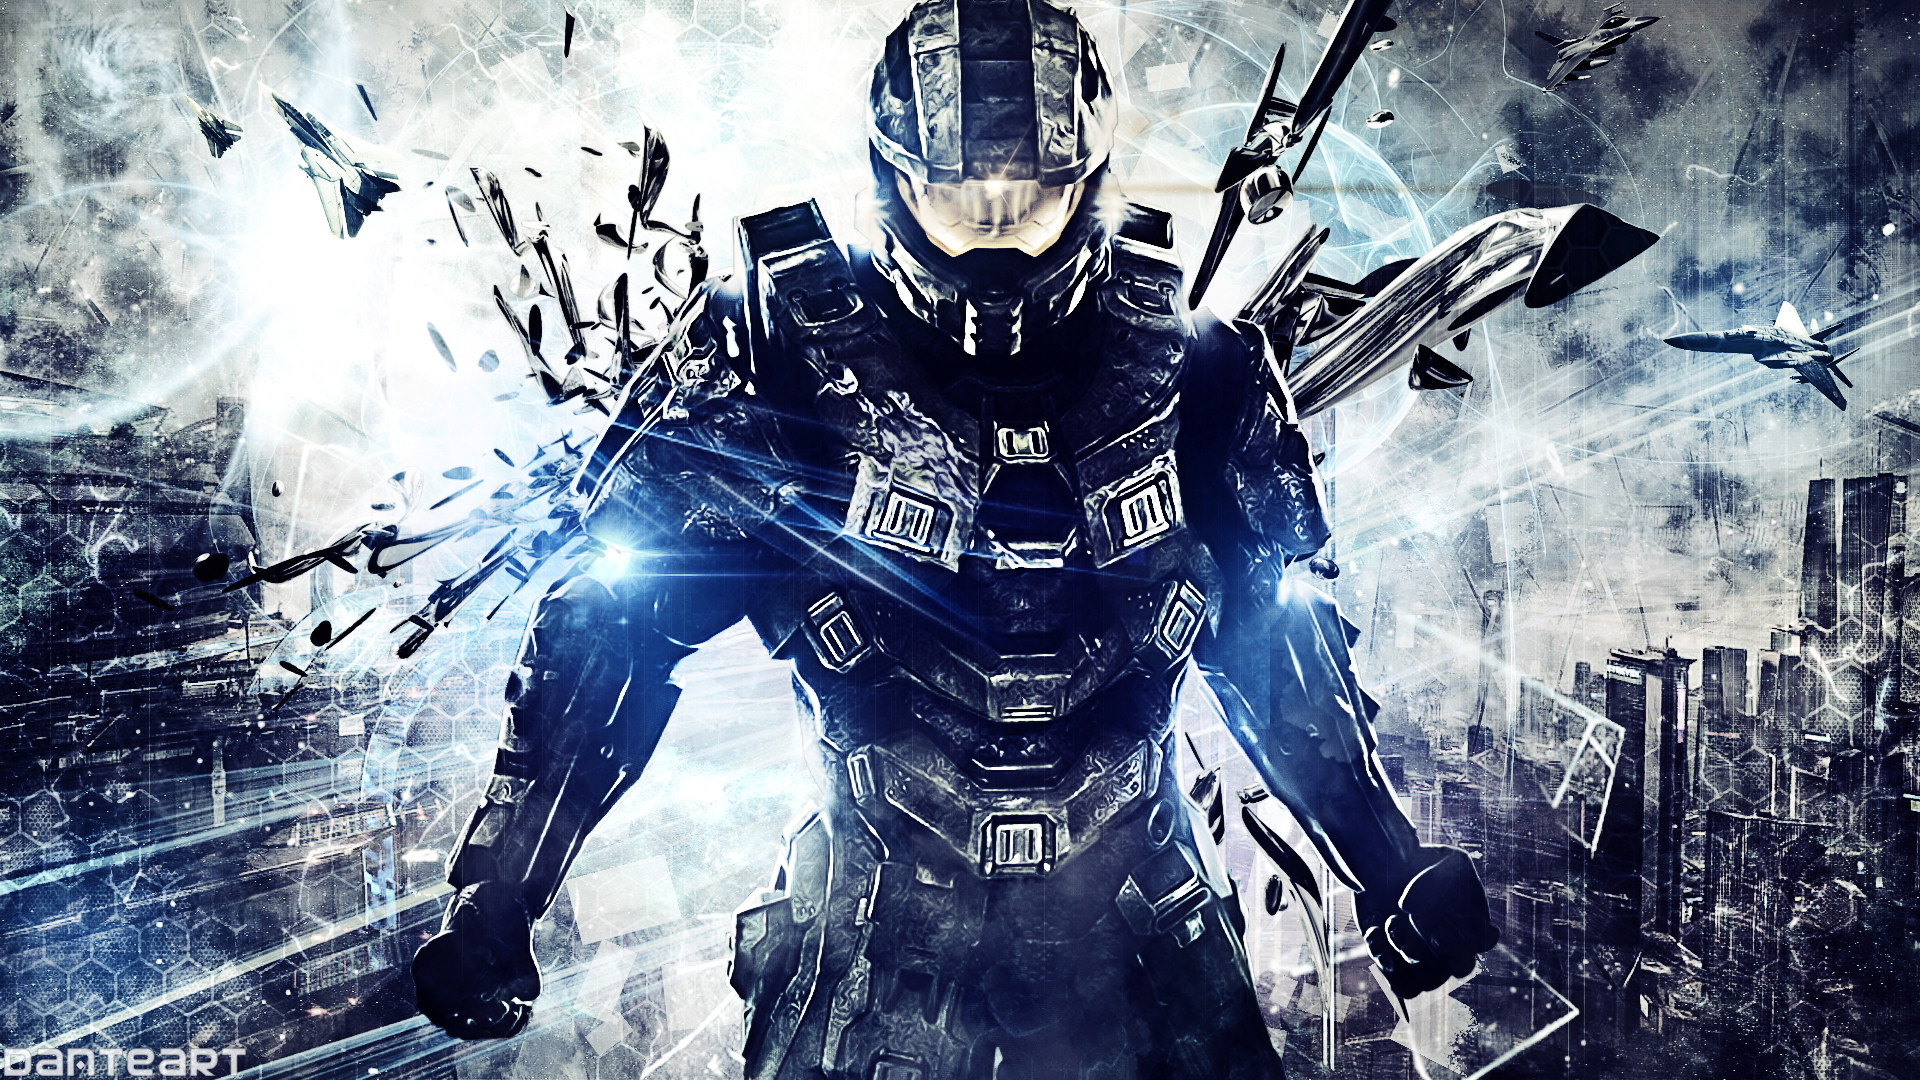 HALO HD Wallpapers and Backgrounds   Wallpapers For Desktop   Pinterest    Hd wallpaper, Wallpaper and Wallpaper backgrounds